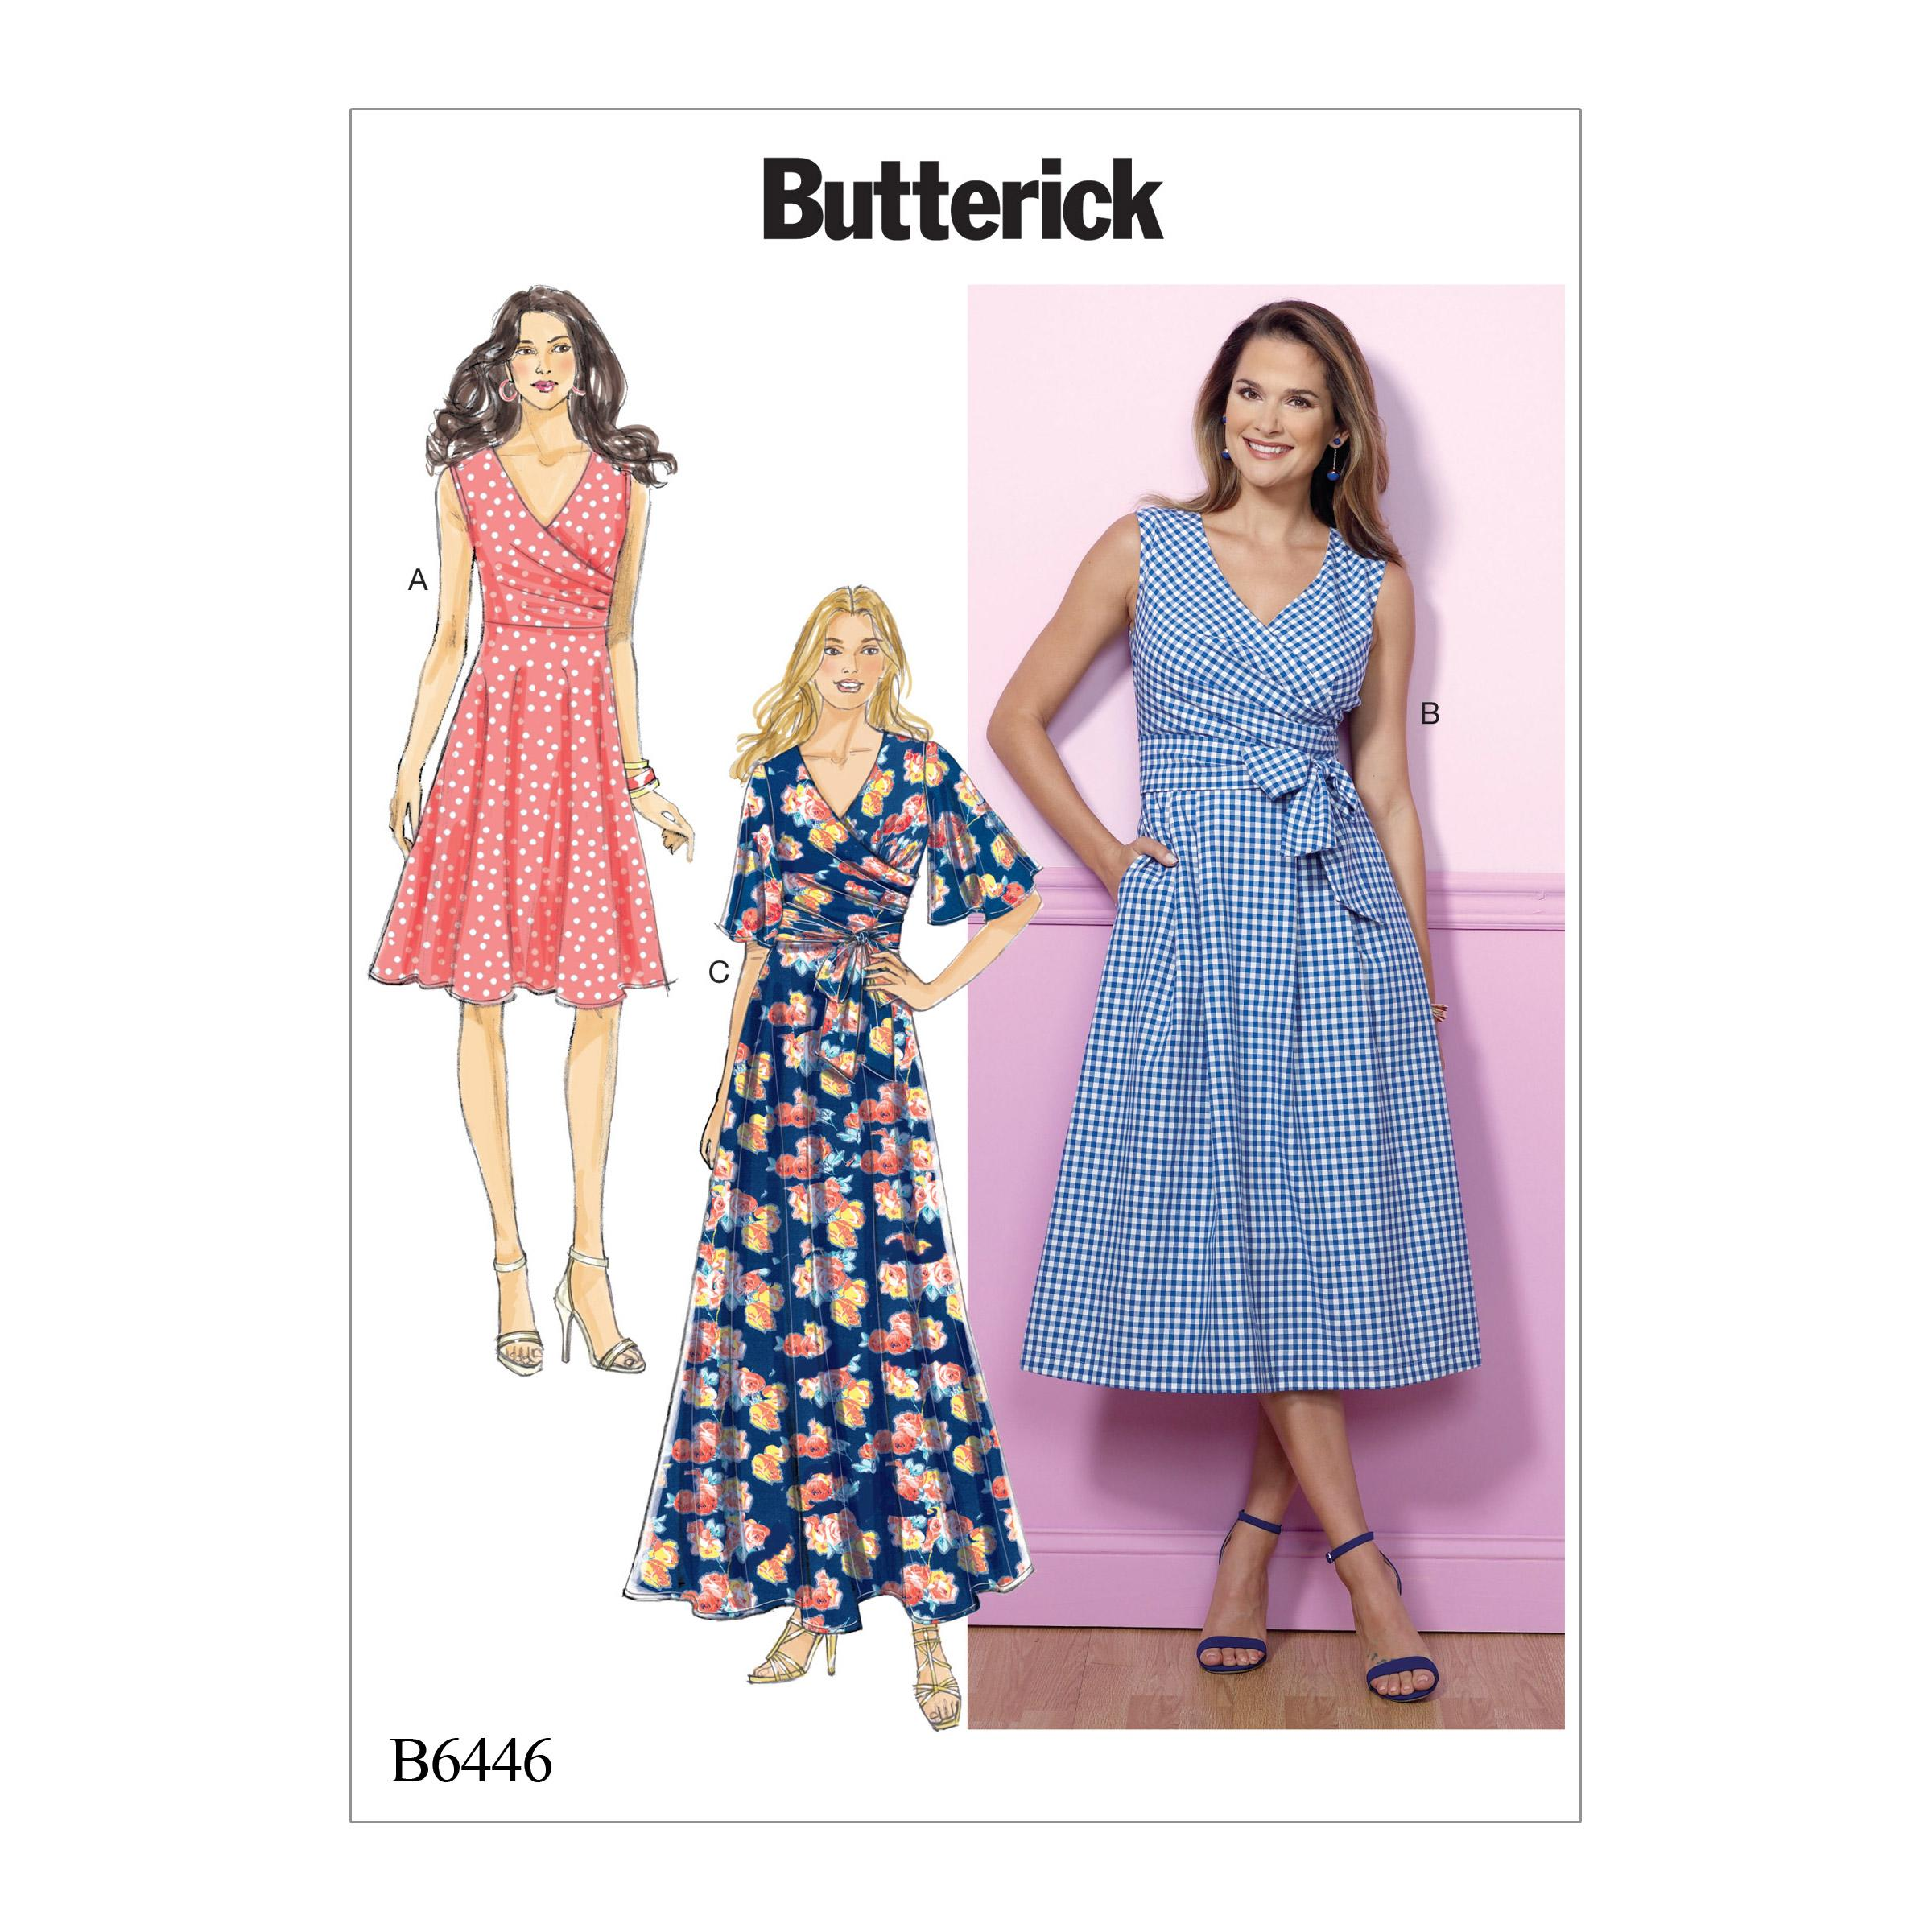 Butterick B6446 Misses' Pleated Wrap Dresses with Sash